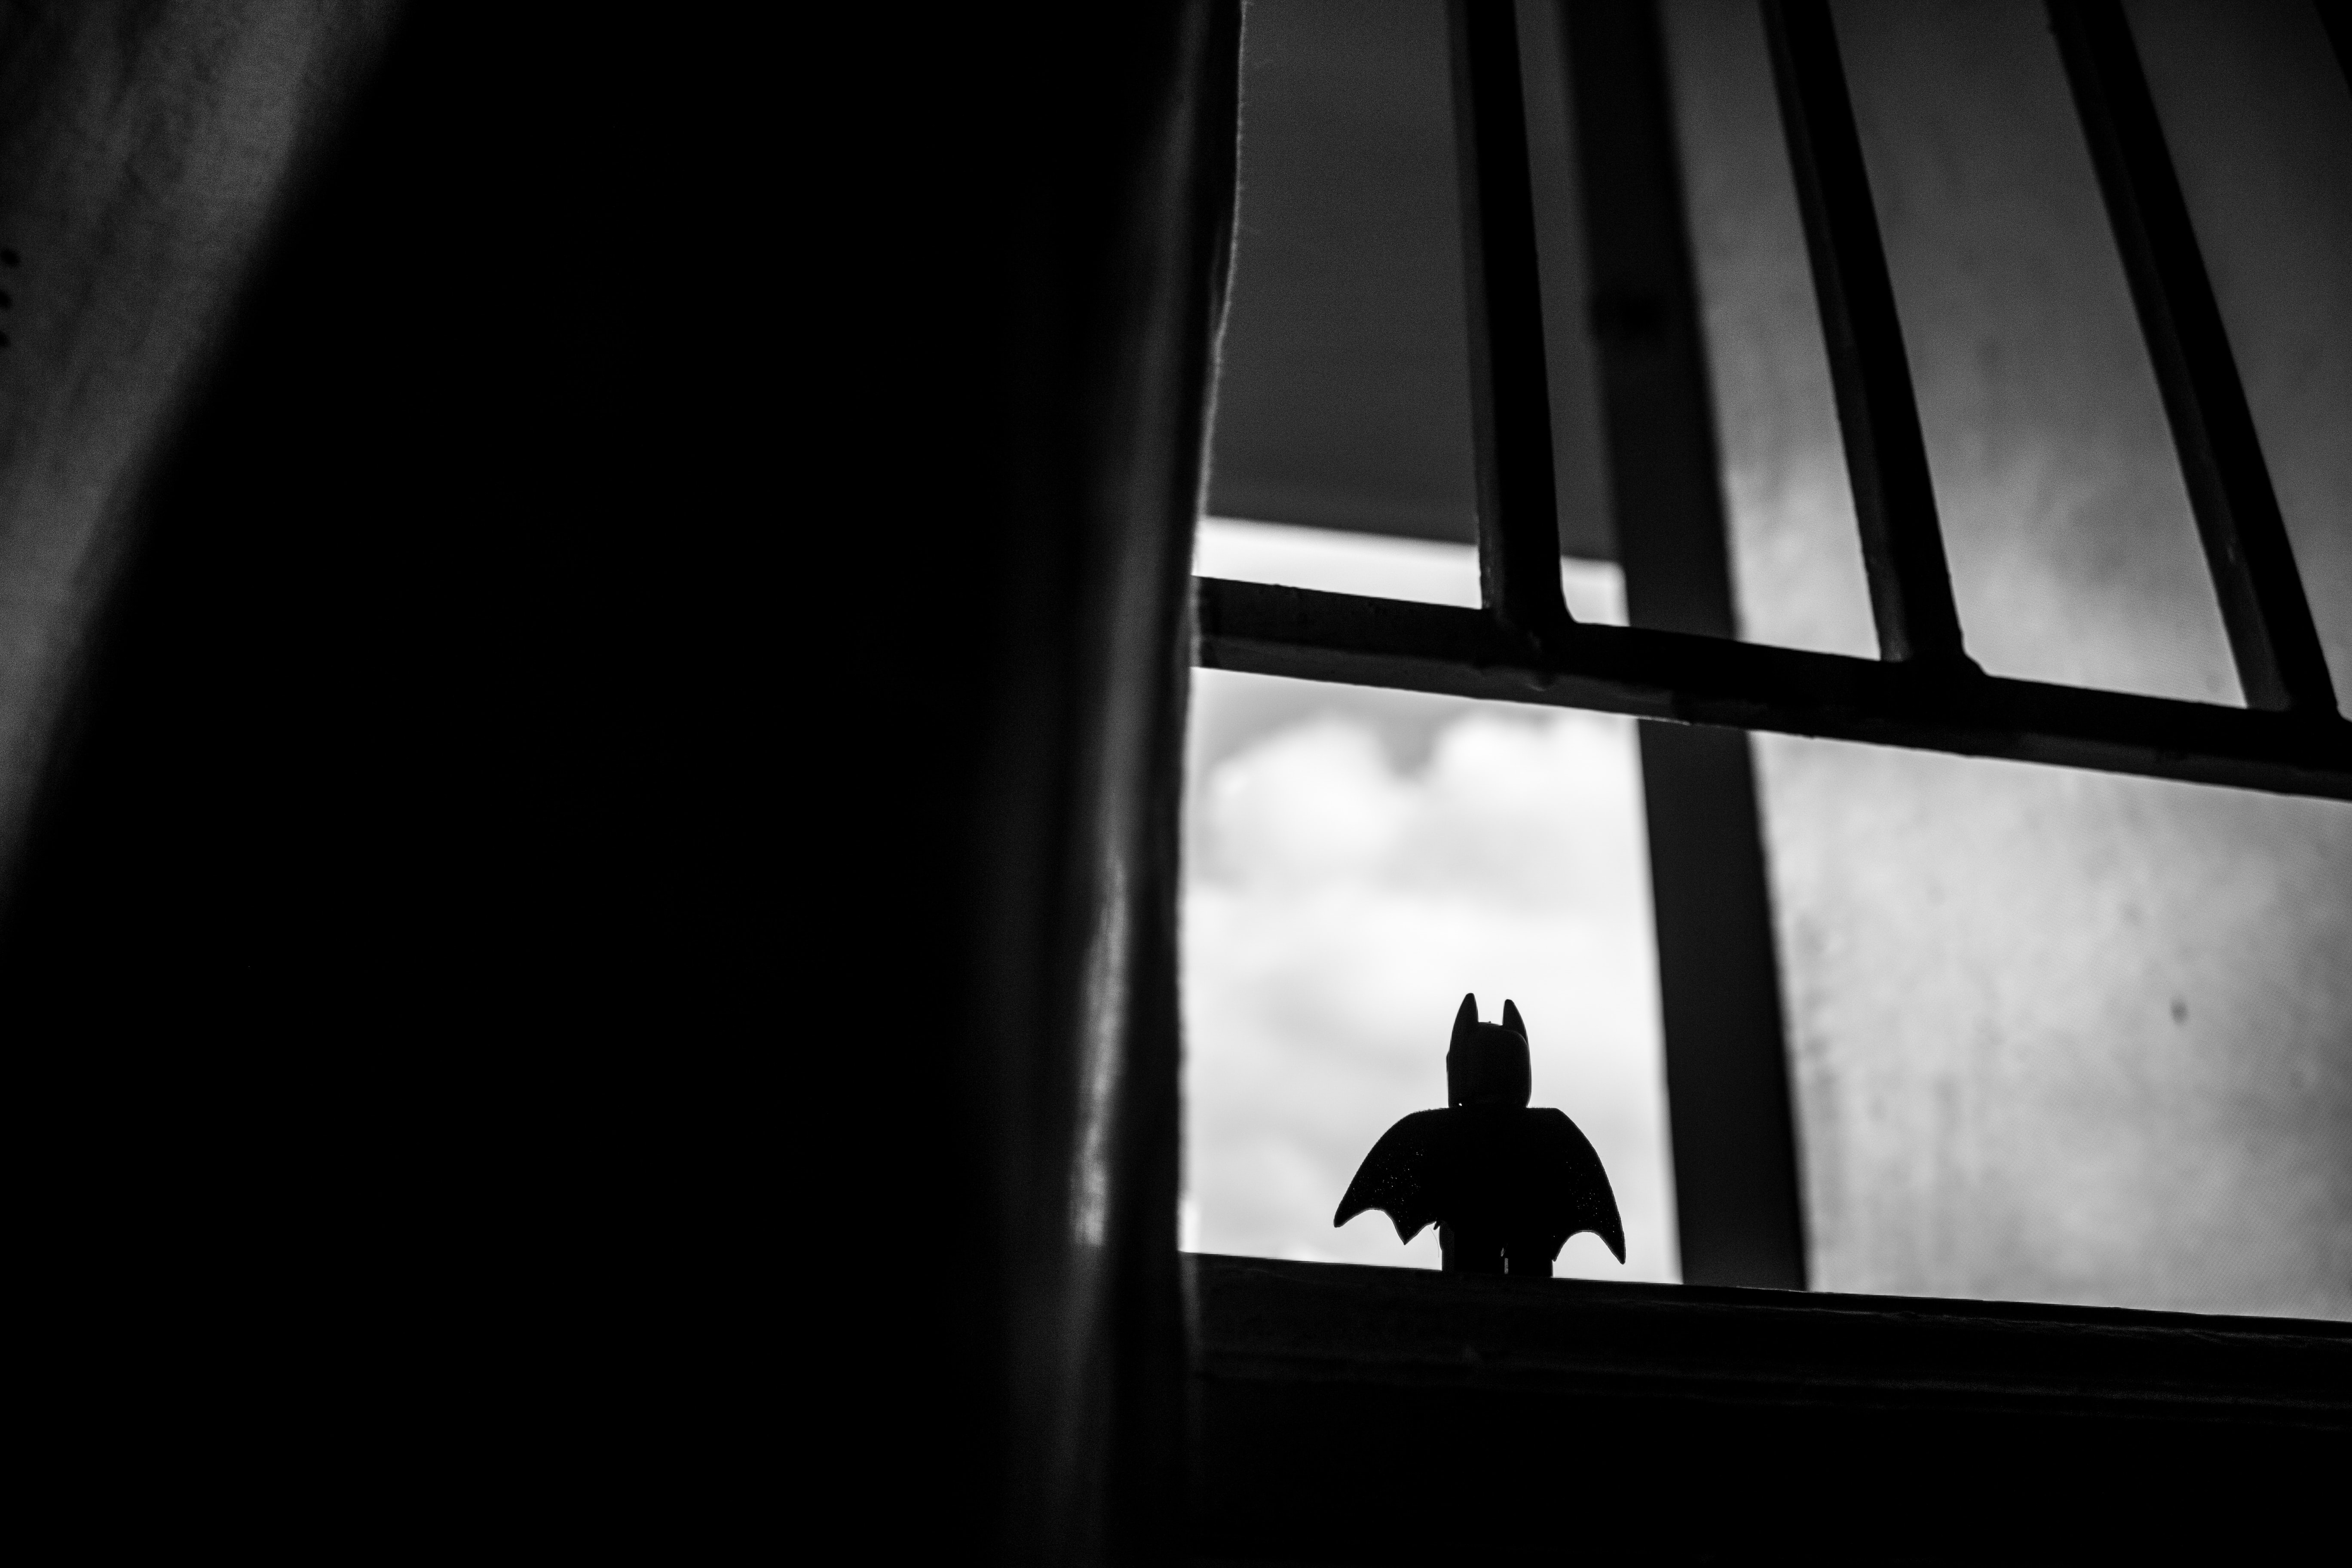 A Lego Batman toy sitting in a window looking out to the sky.